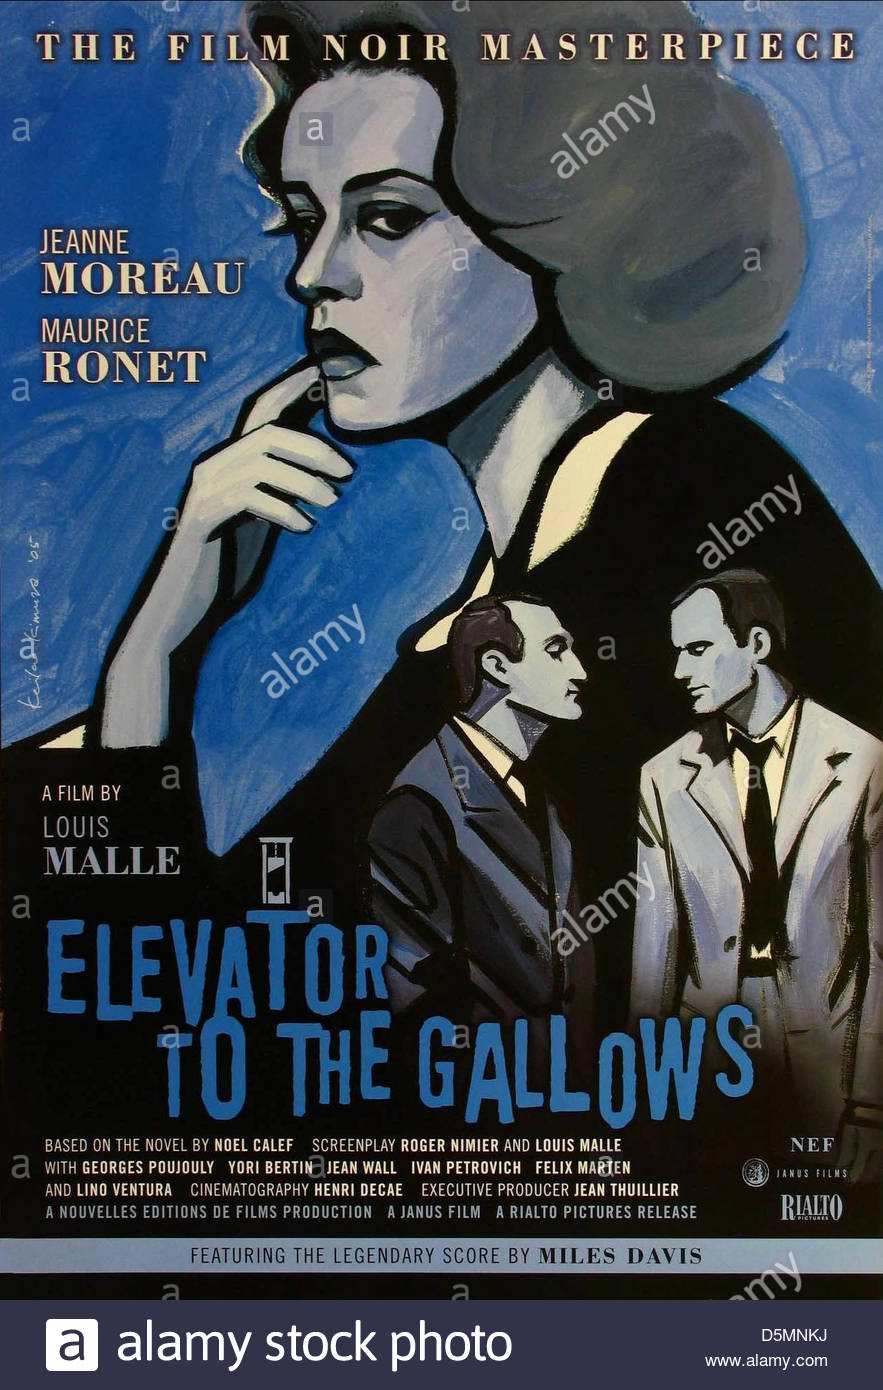 MOVIE POSTER LIFT TO THE SCAFFOLD; ELEVATOR TO THE GALLOWS; FRANTIC (1958) - Stock Image